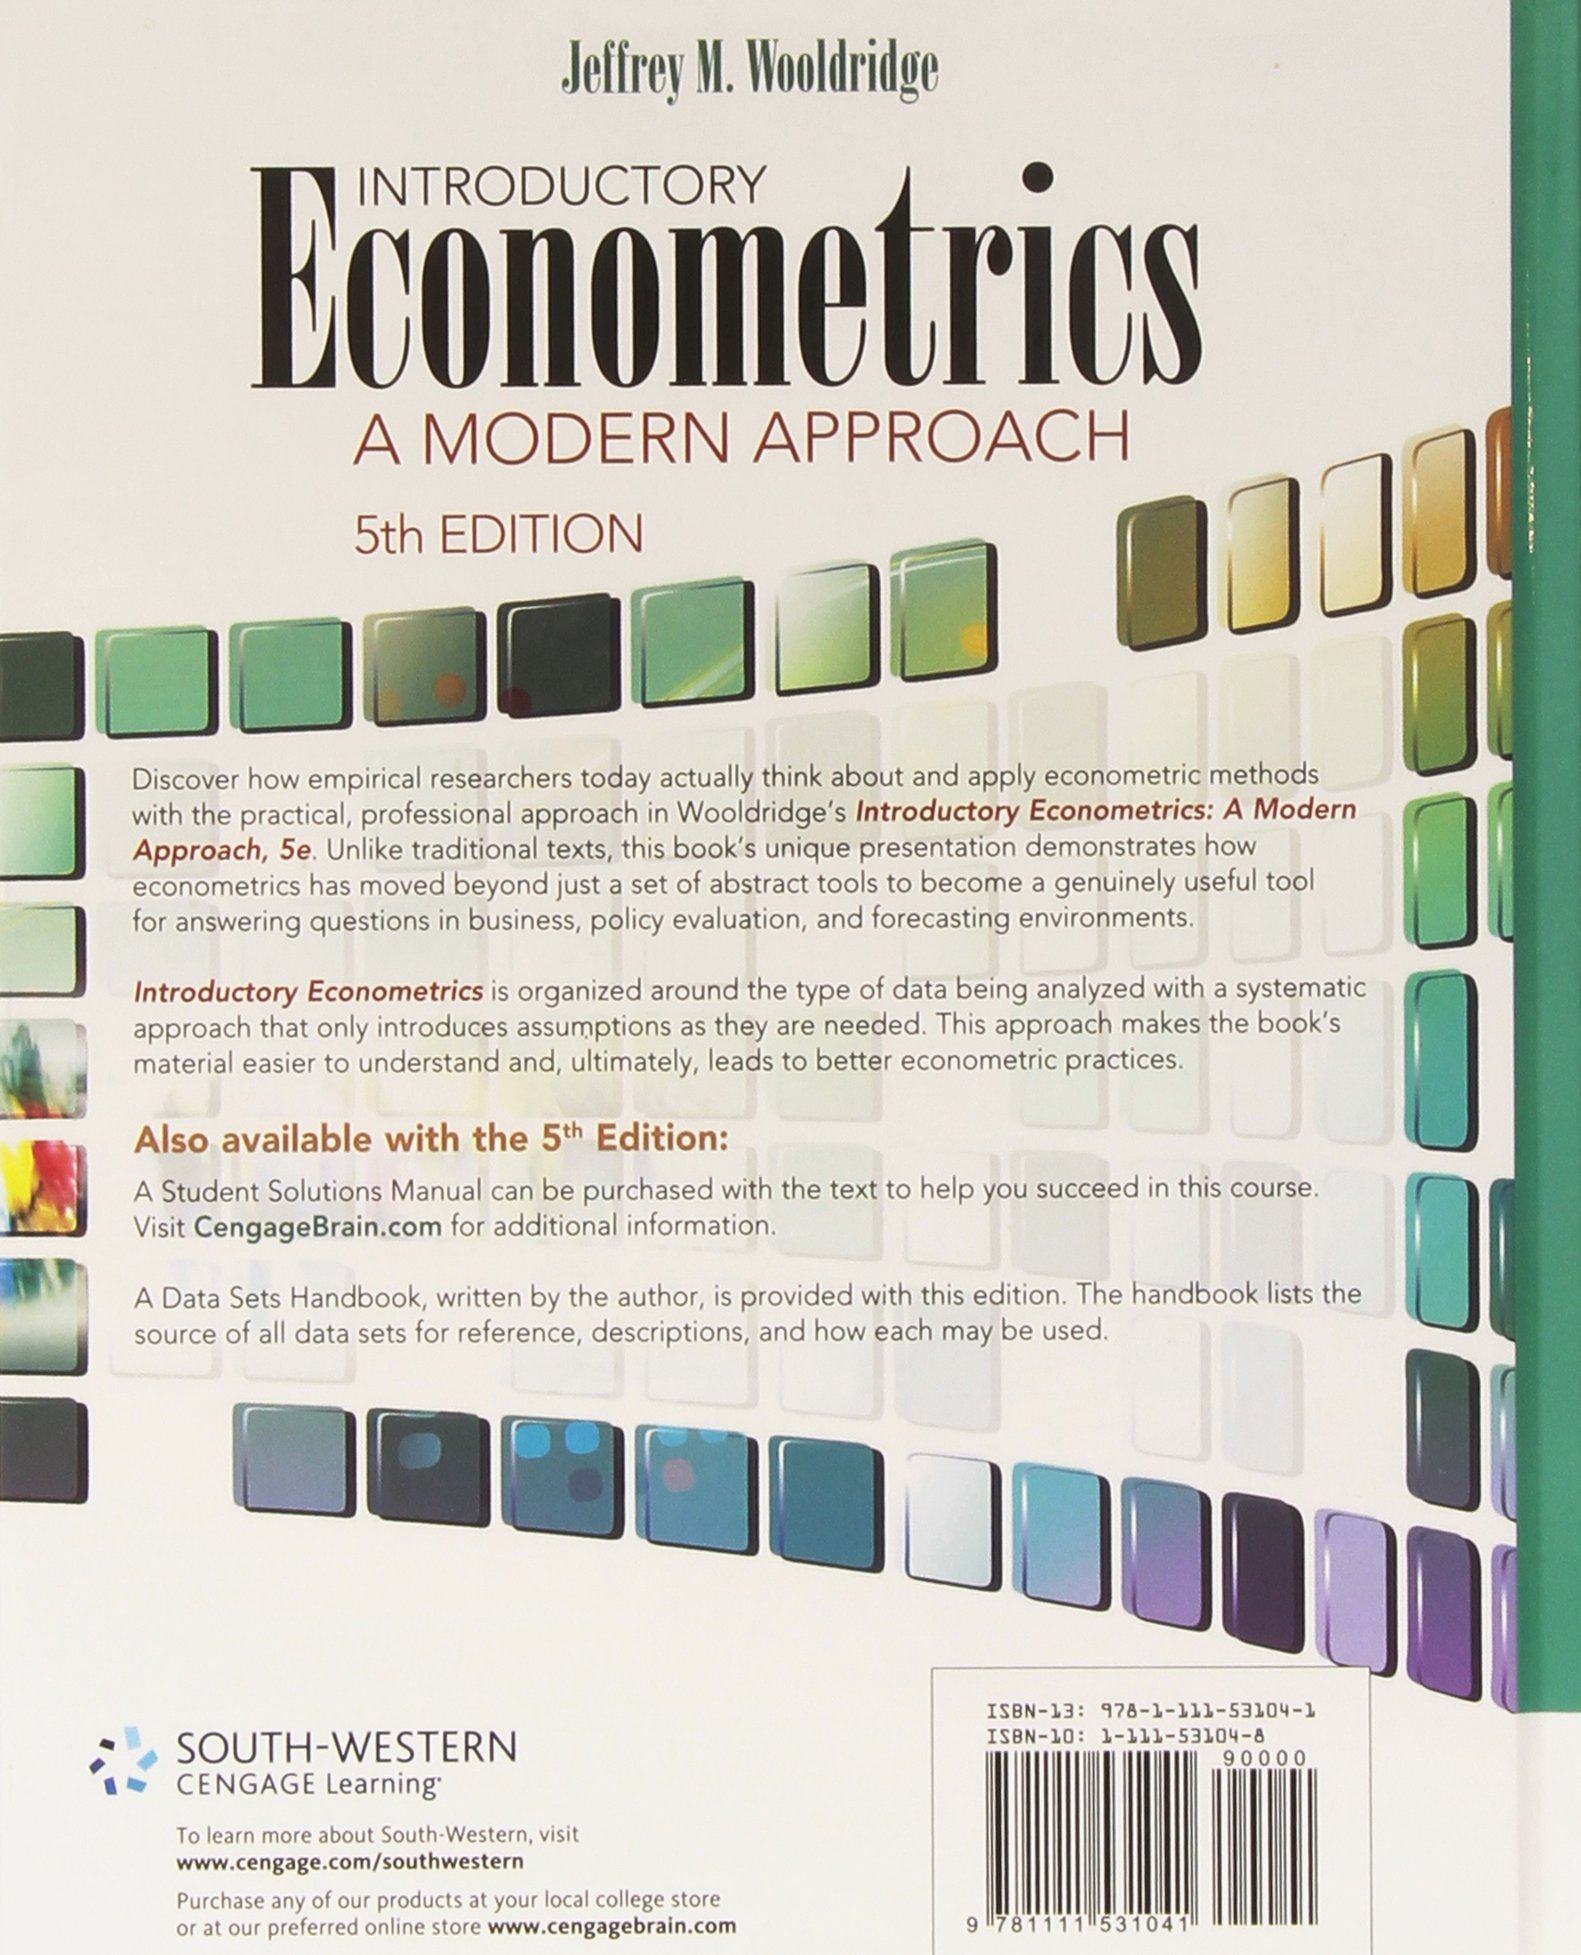 Introductory econometrics a modern approach jeffrey wooldridge introductory econometrics a modern approach jeffrey wooldridge 9781111531041 books amazon fandeluxe